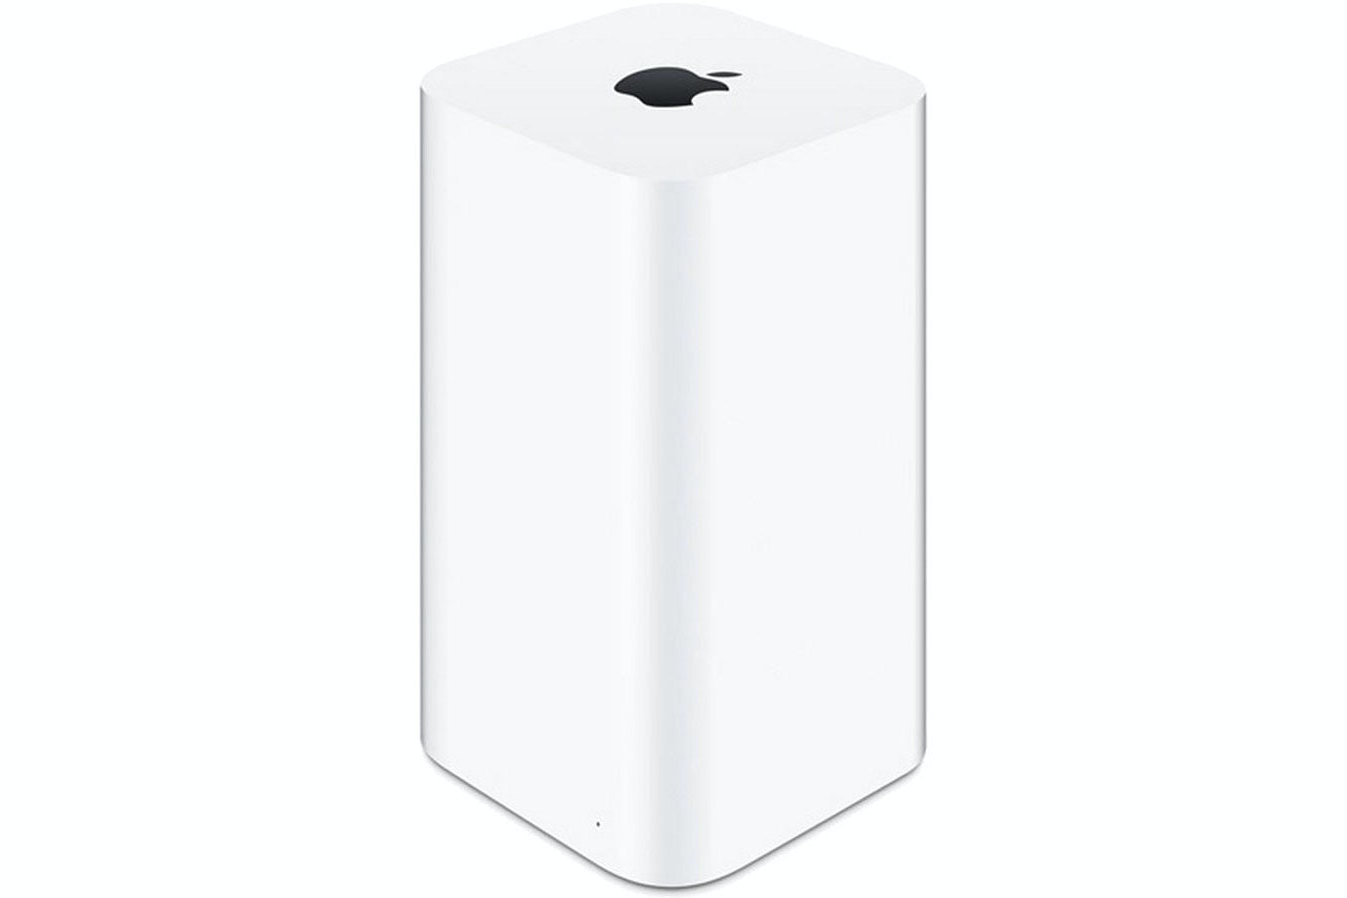 Apple AirPort Time Capsule | 2TB